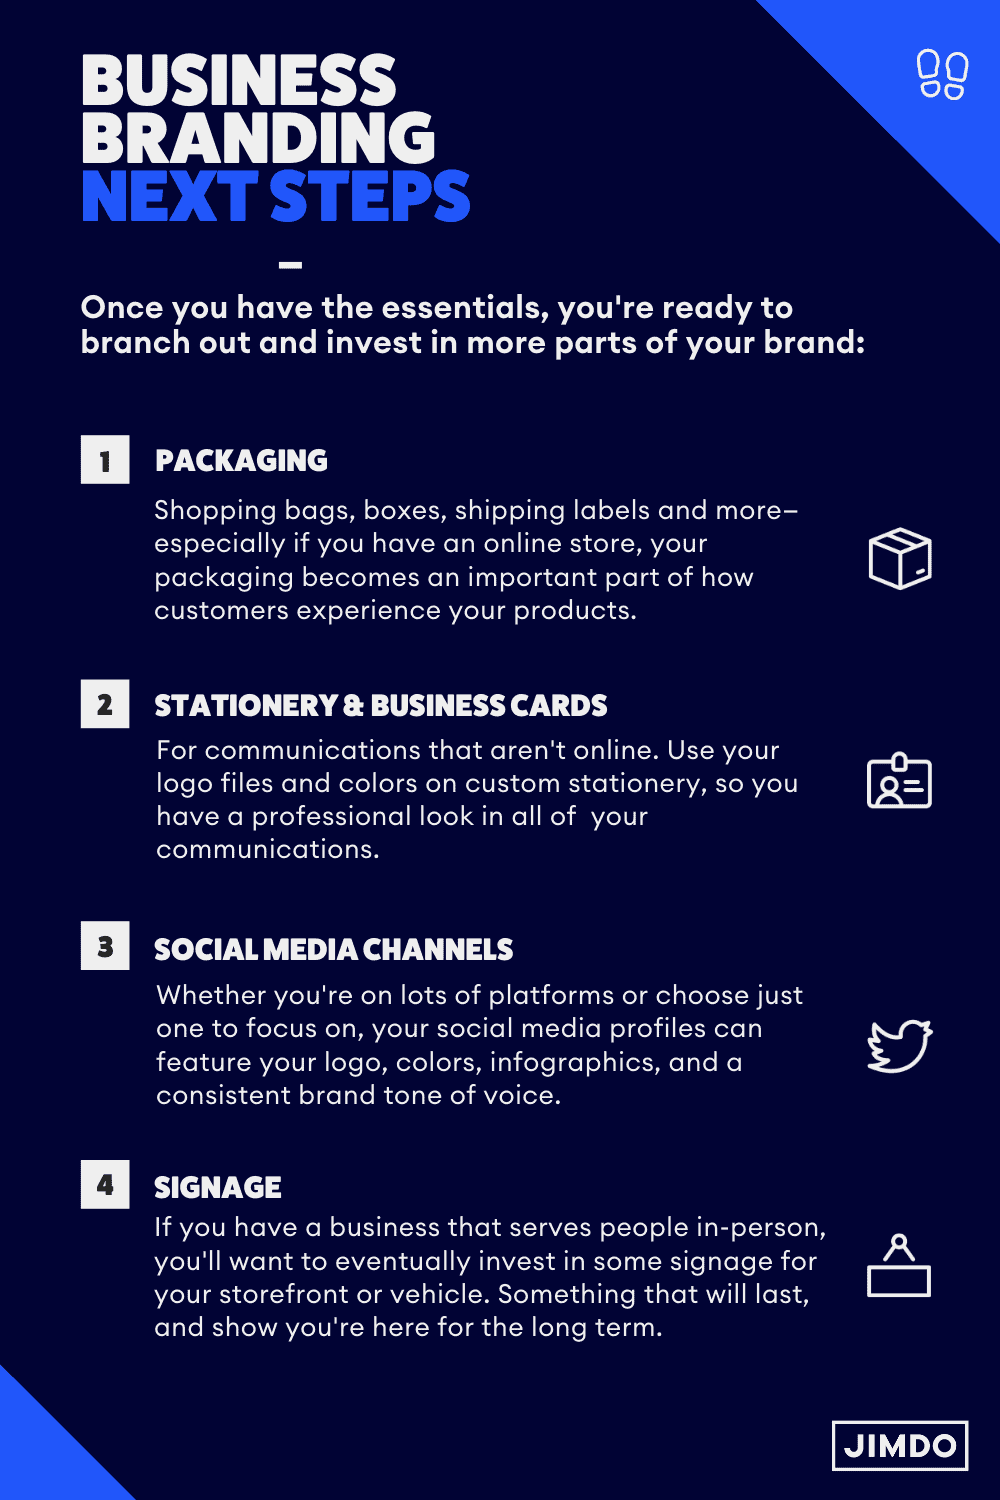 Once you have the essentials, you're ready to branch out and invest in more parts of your brand.